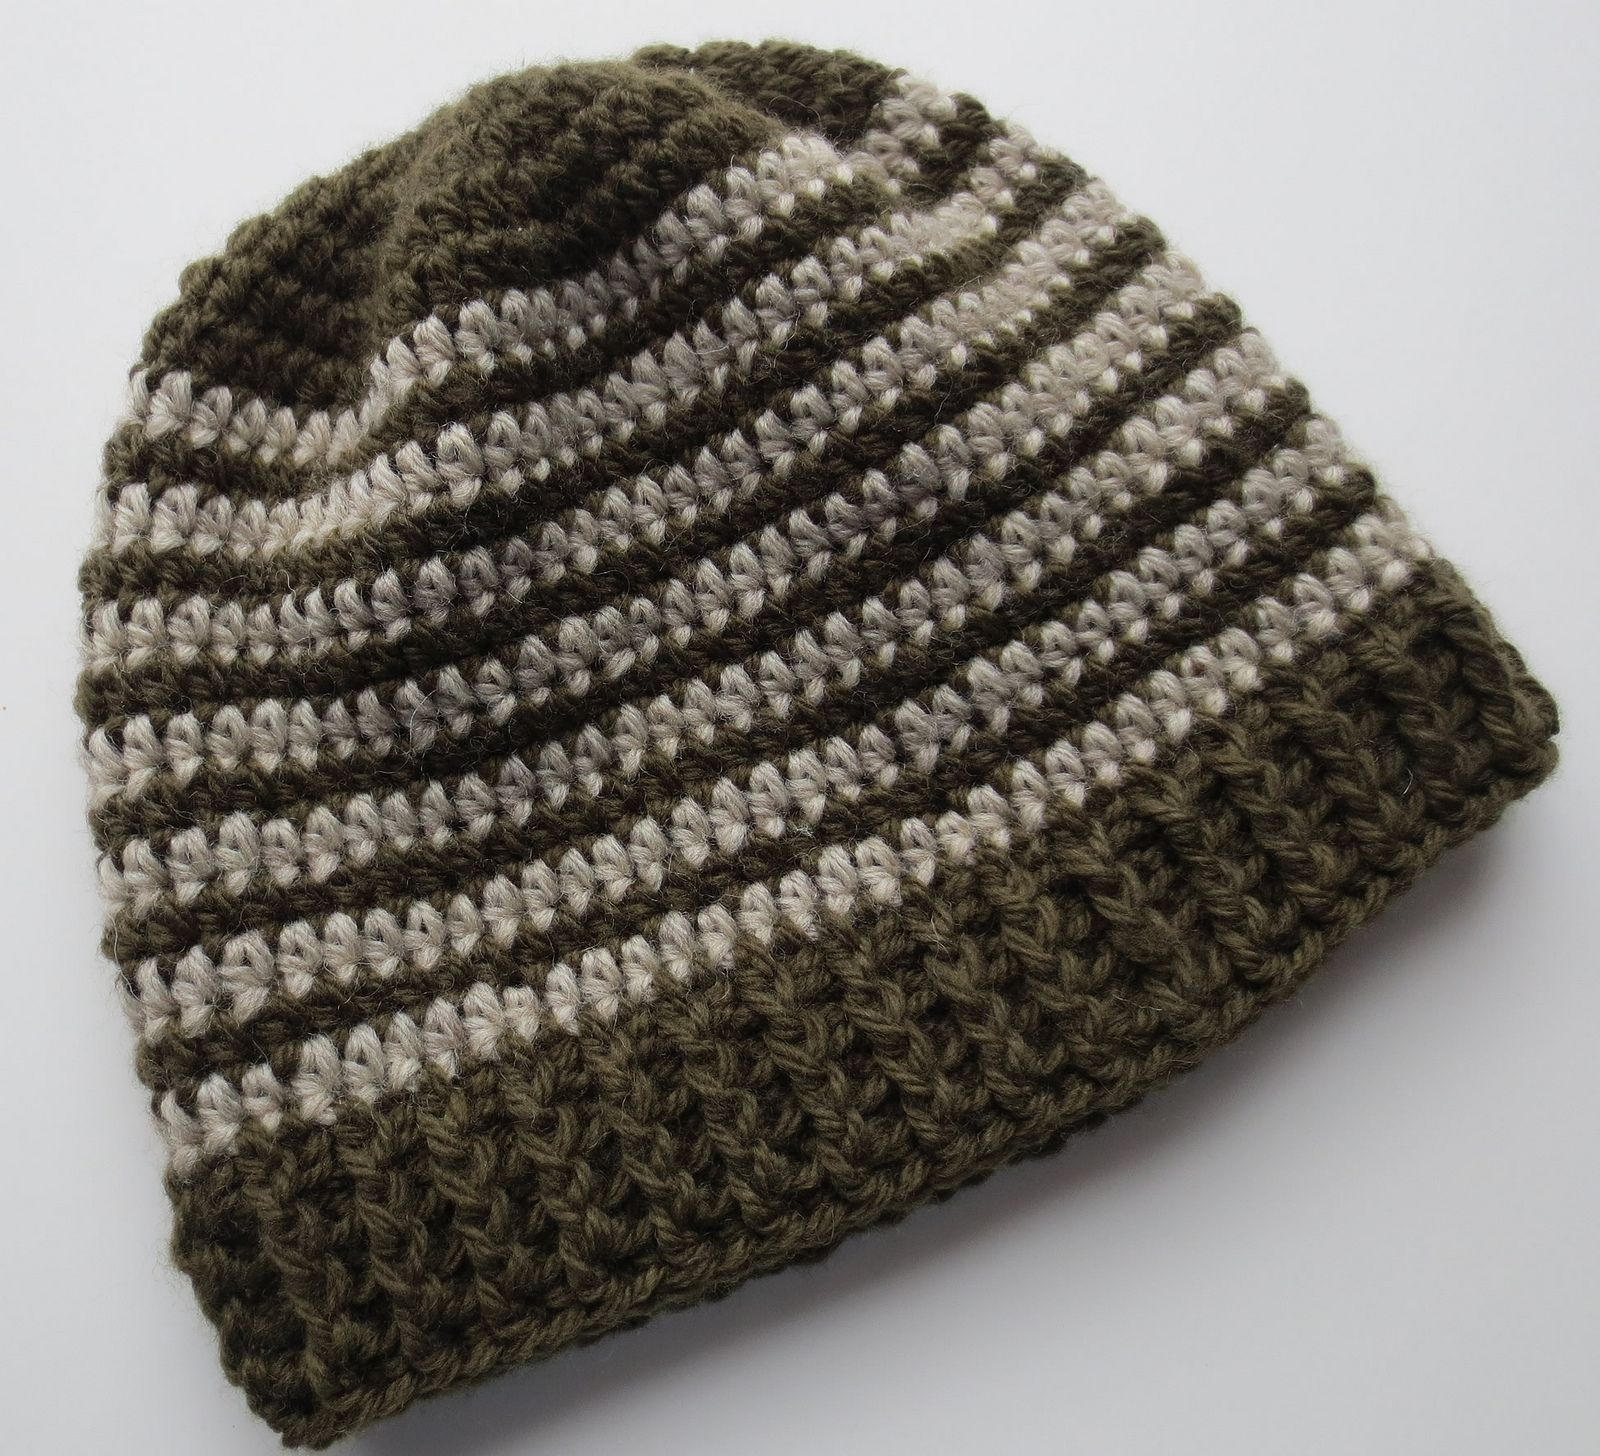 Crocheted Ribbed Hat Pattern | My Recycled Bags.com | Hats ...